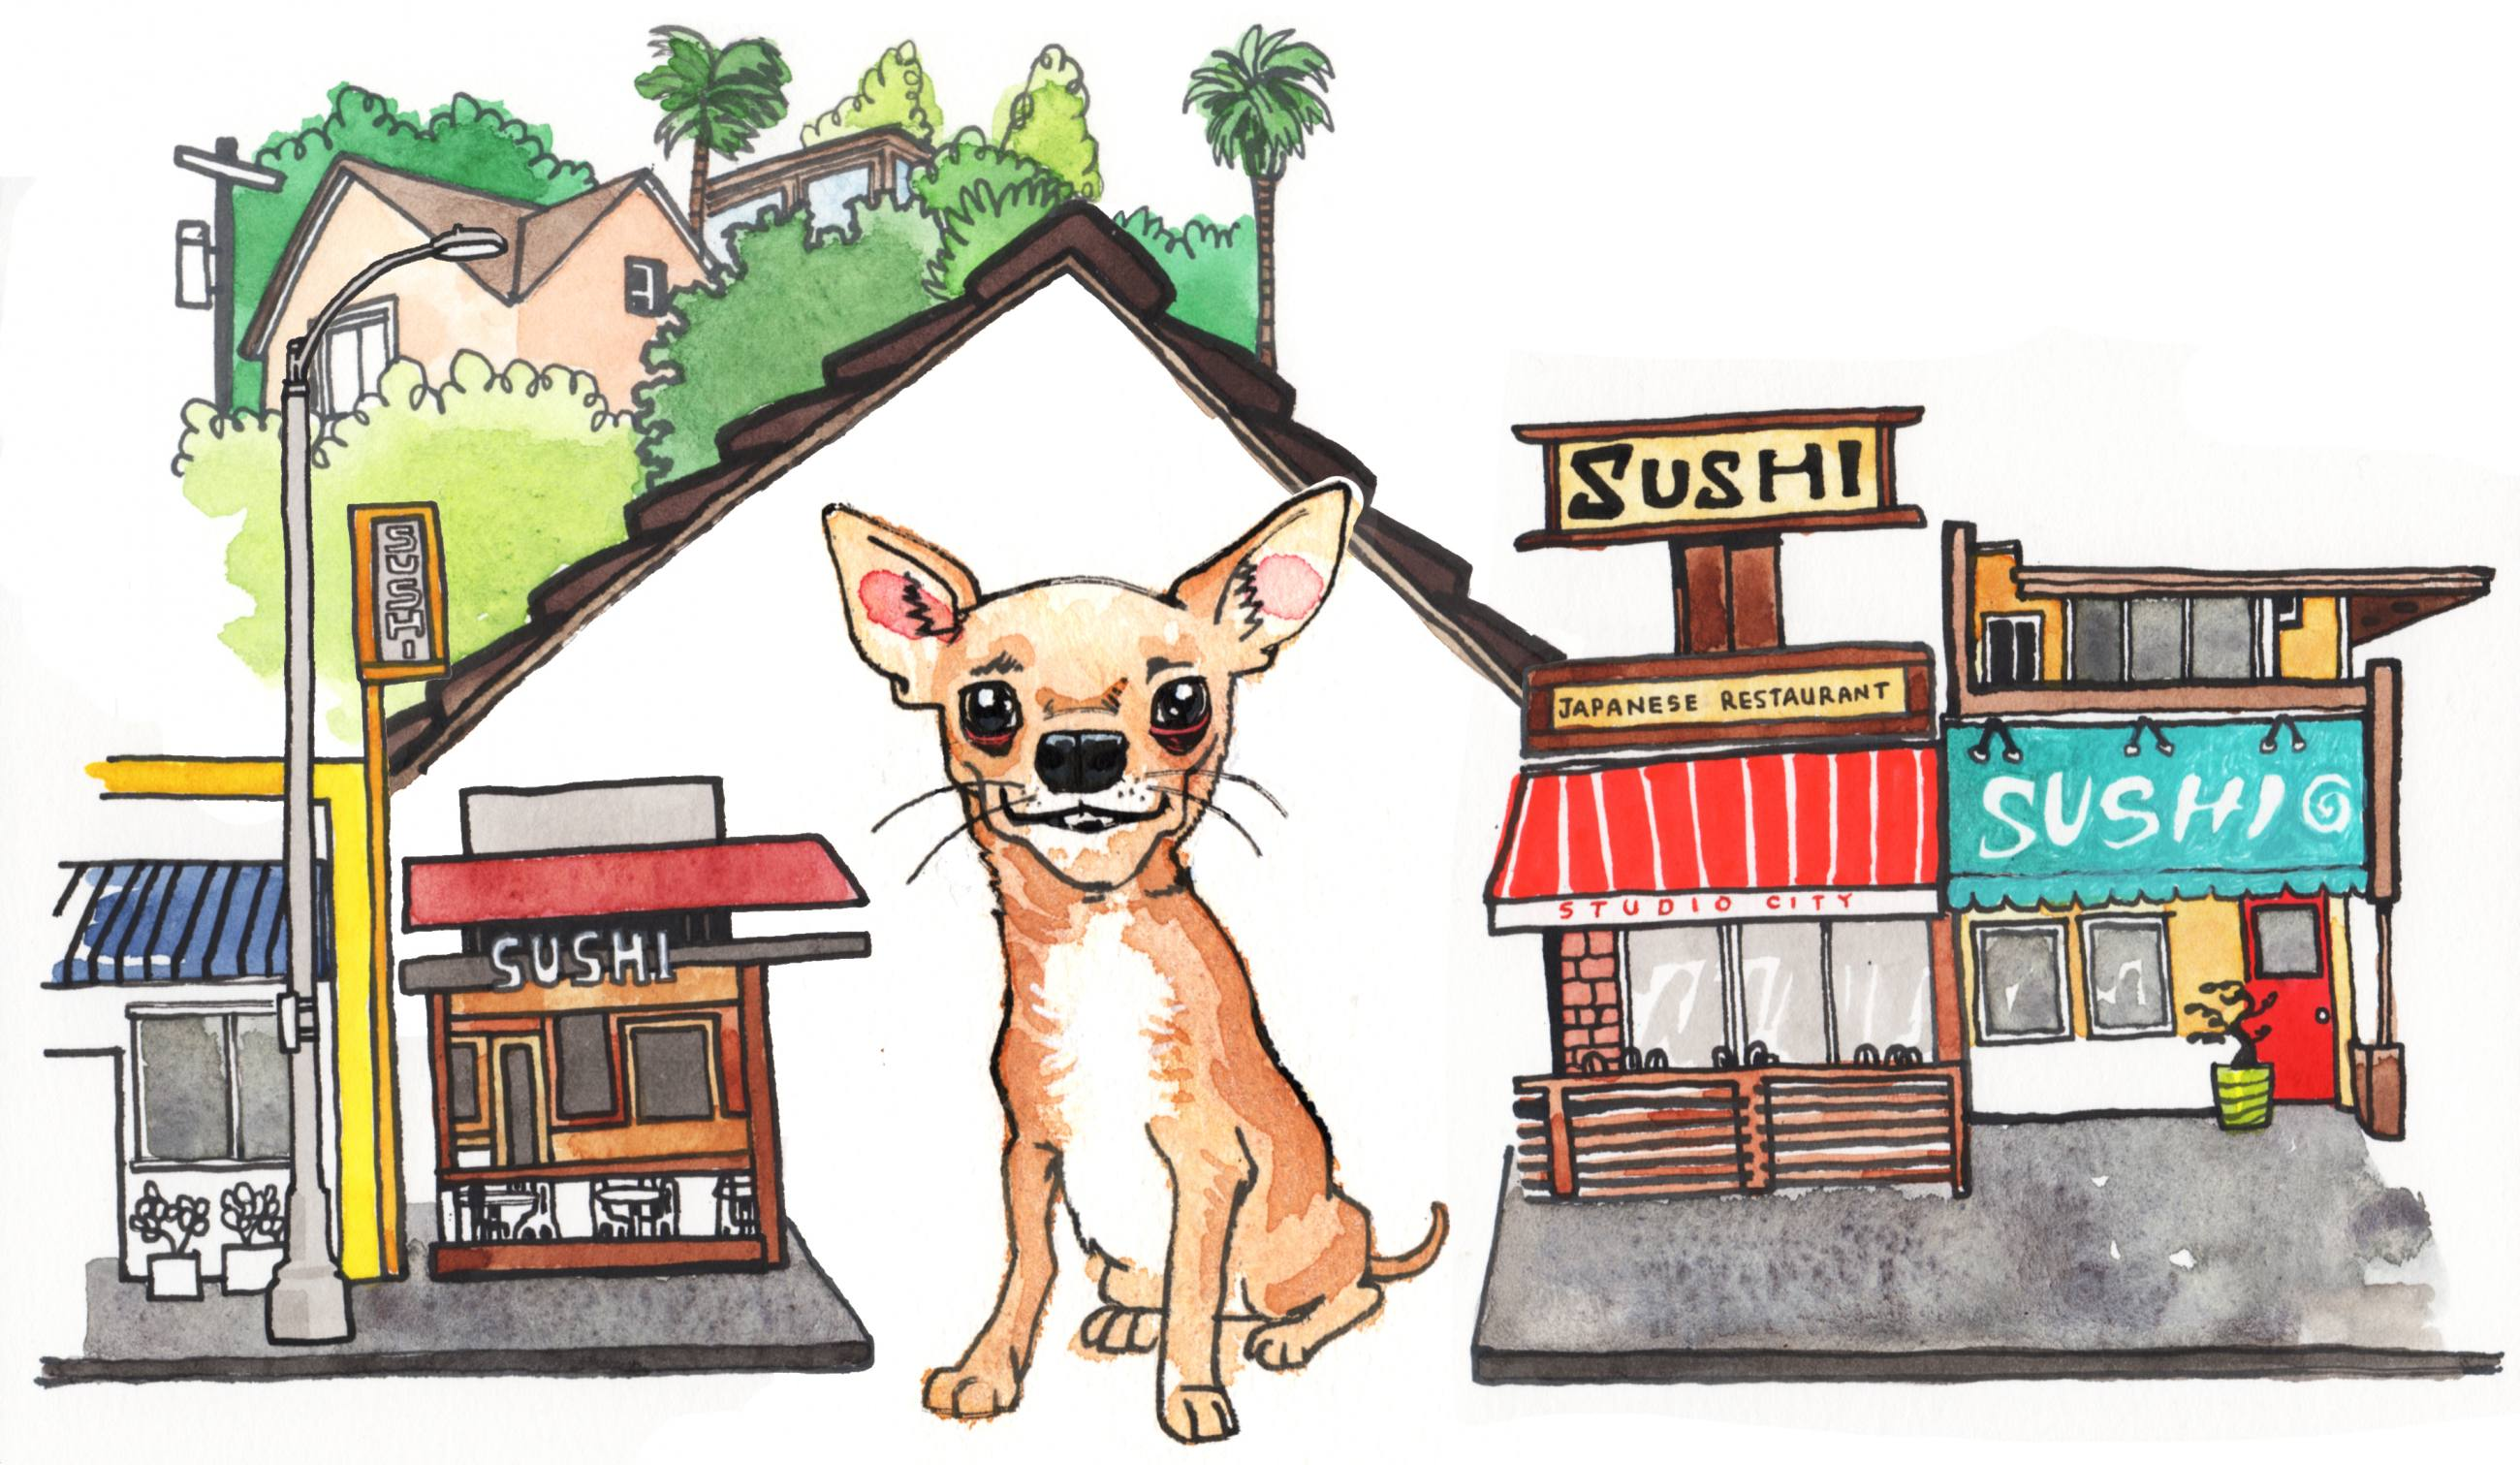 Chihuahua in Studio City | Illustration by Max Kornell